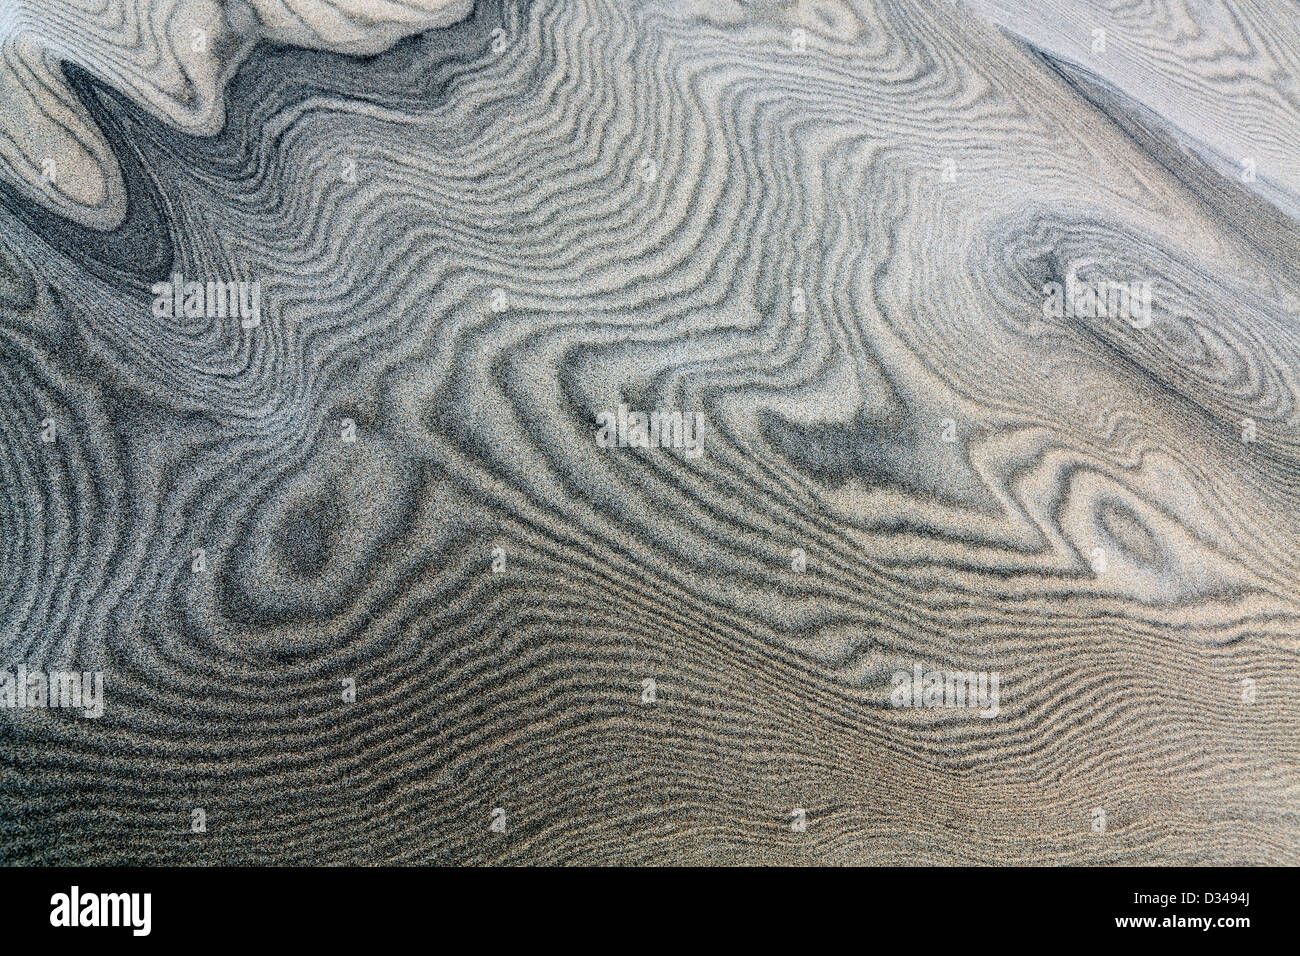 Wind sculpted sand dunes patterns at Mangawhai Heads - Stock Image